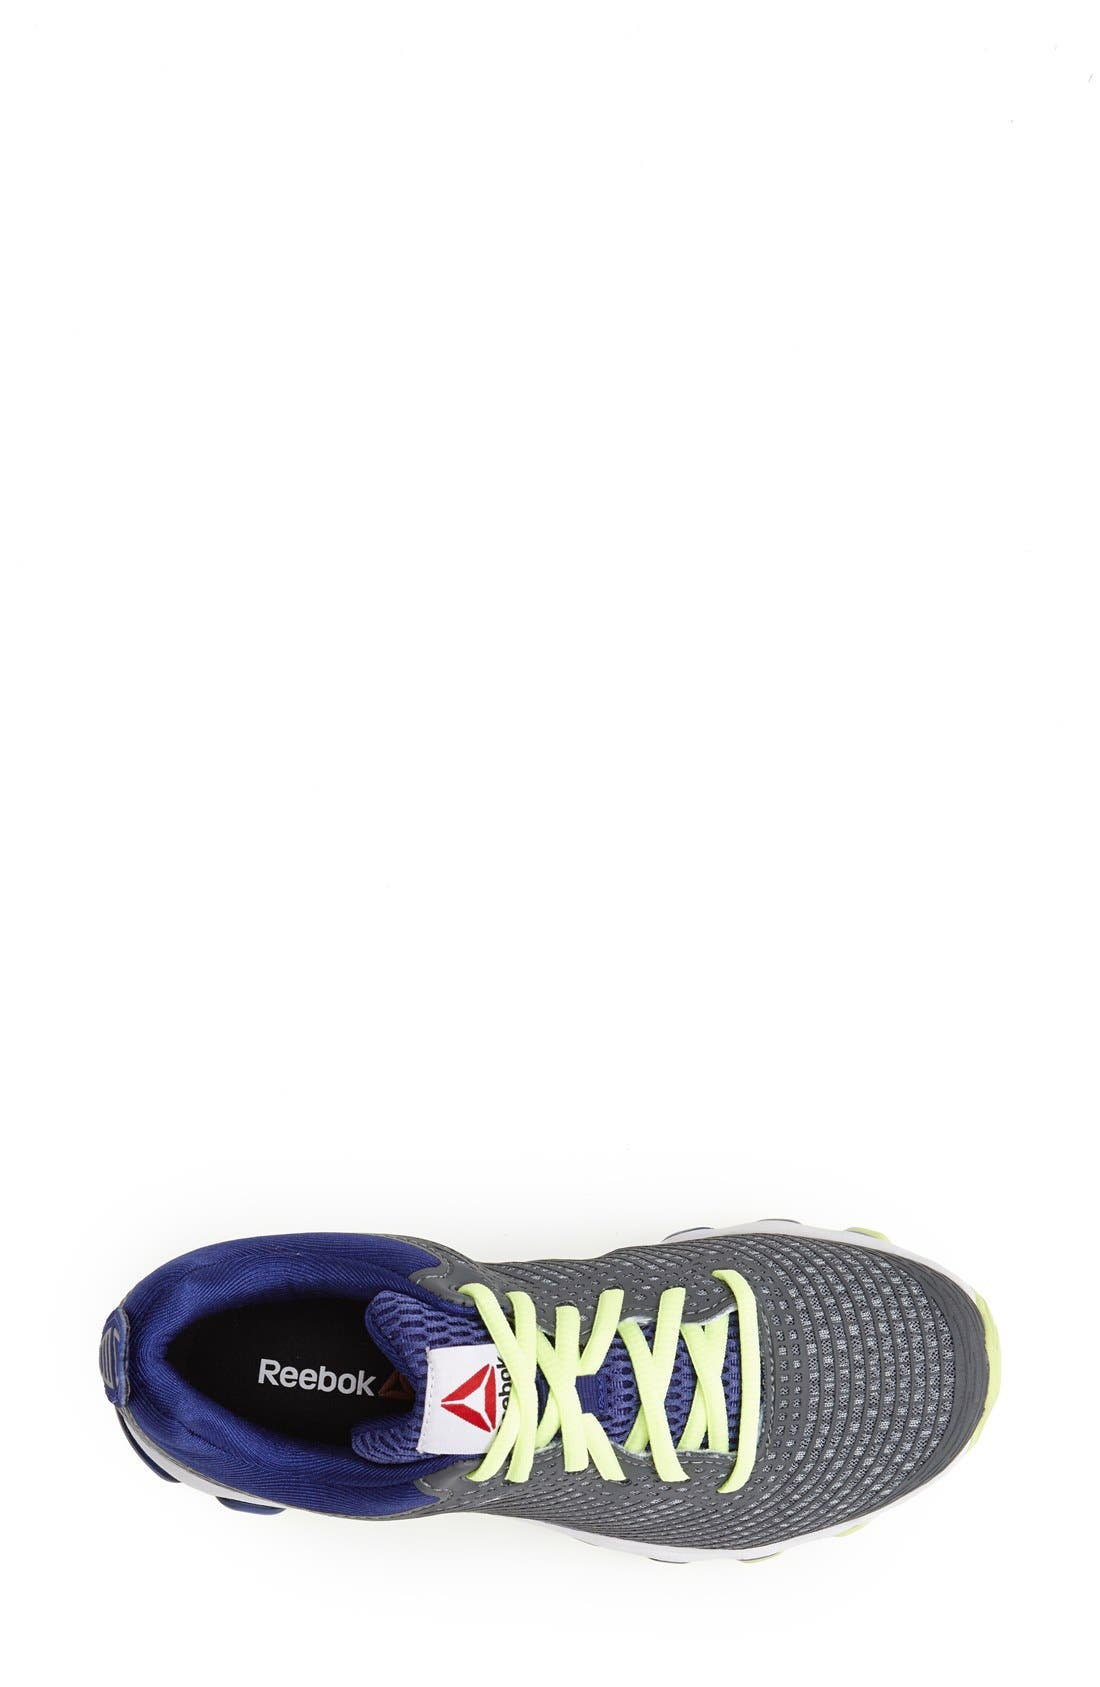 Alternate Image 3  - Reebok 'Z-Jet - CrossFit' Running Shoe (Women)